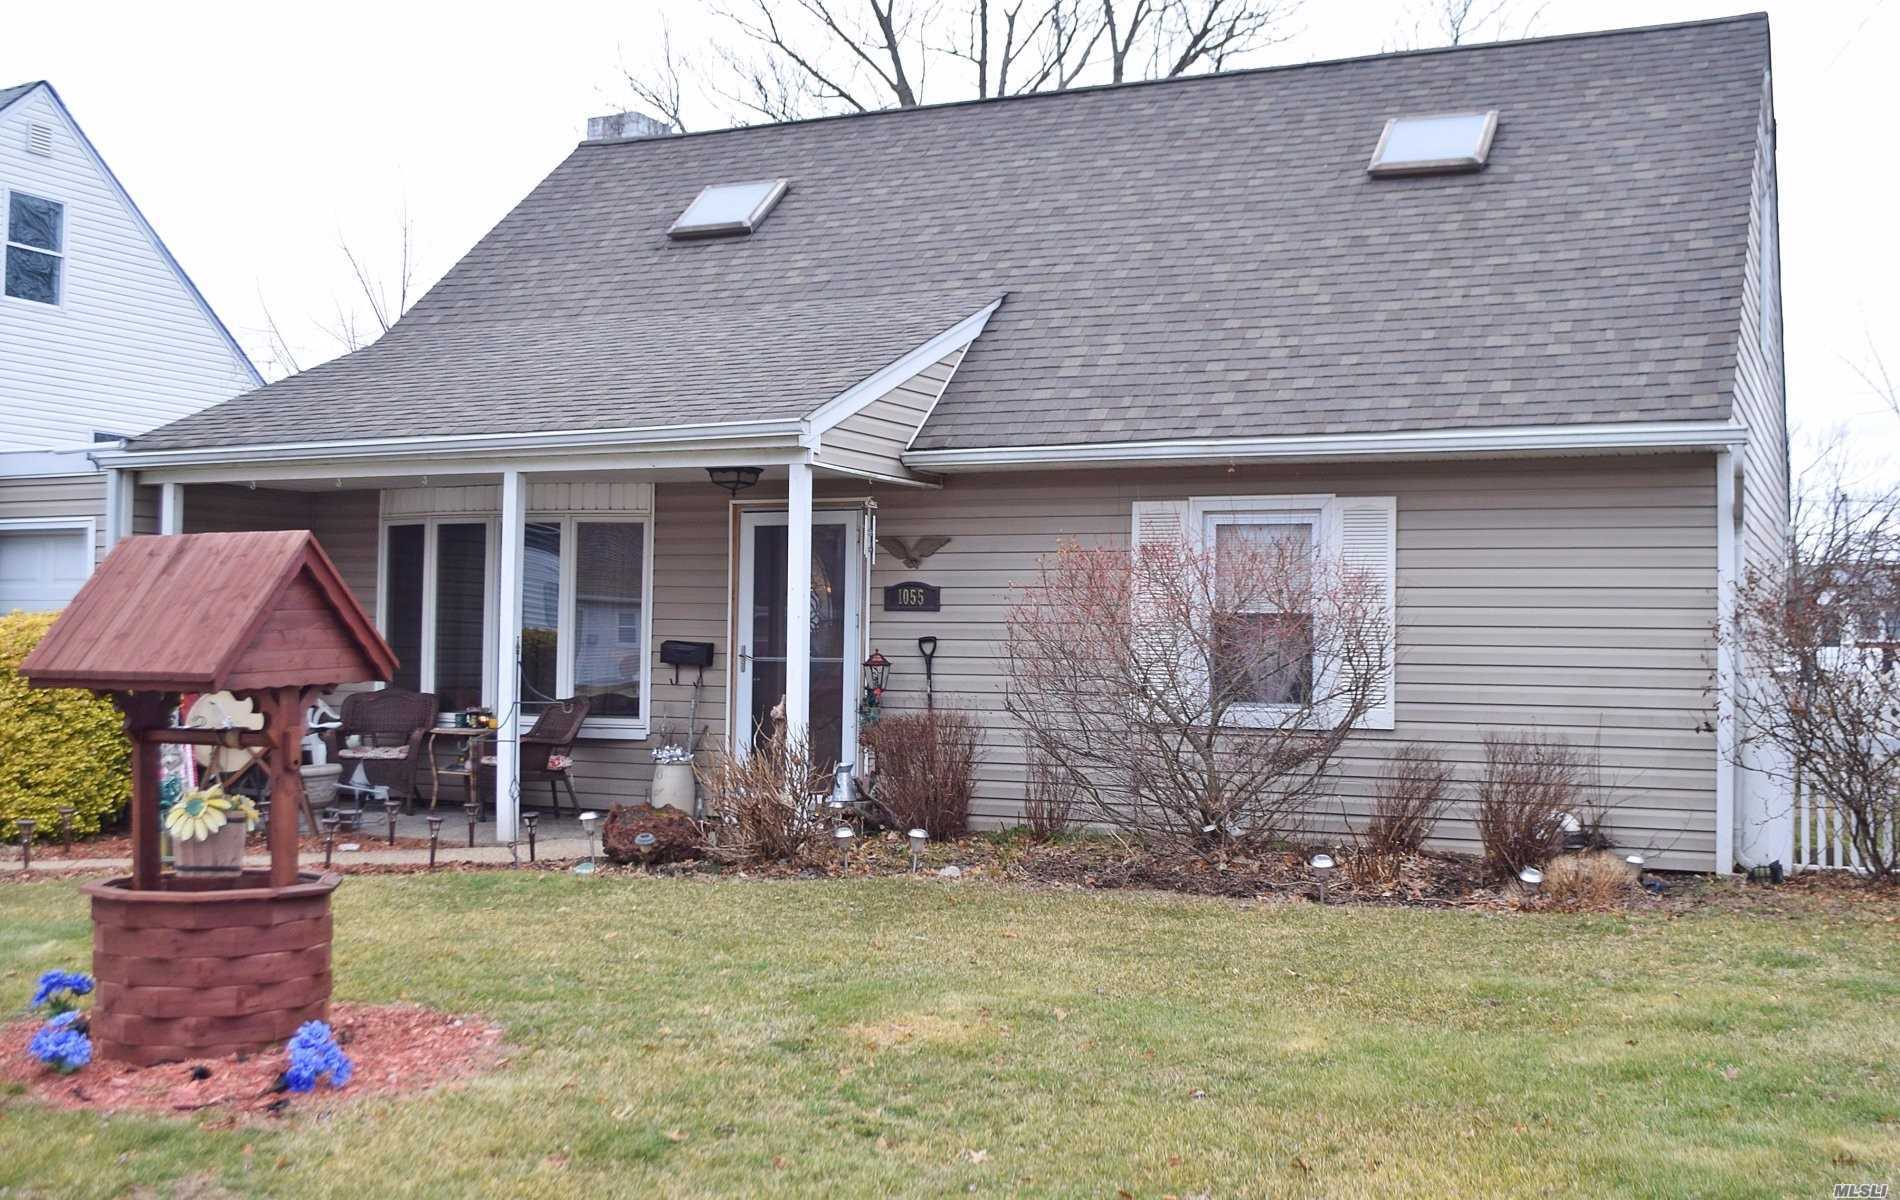 Charming 4 Bdrm, 2 Bth Cape, Fully Redone. Desirable Block. Wood Flrs, Stainless Appl.,  Granite, Open Floor Plan. New Windows, Roof/Siding. Ductless Ac. 1 Car Att. Garage.Great Big Yard. Awesome For Parties, Entertainment. All This And Great Schls. A Must See.